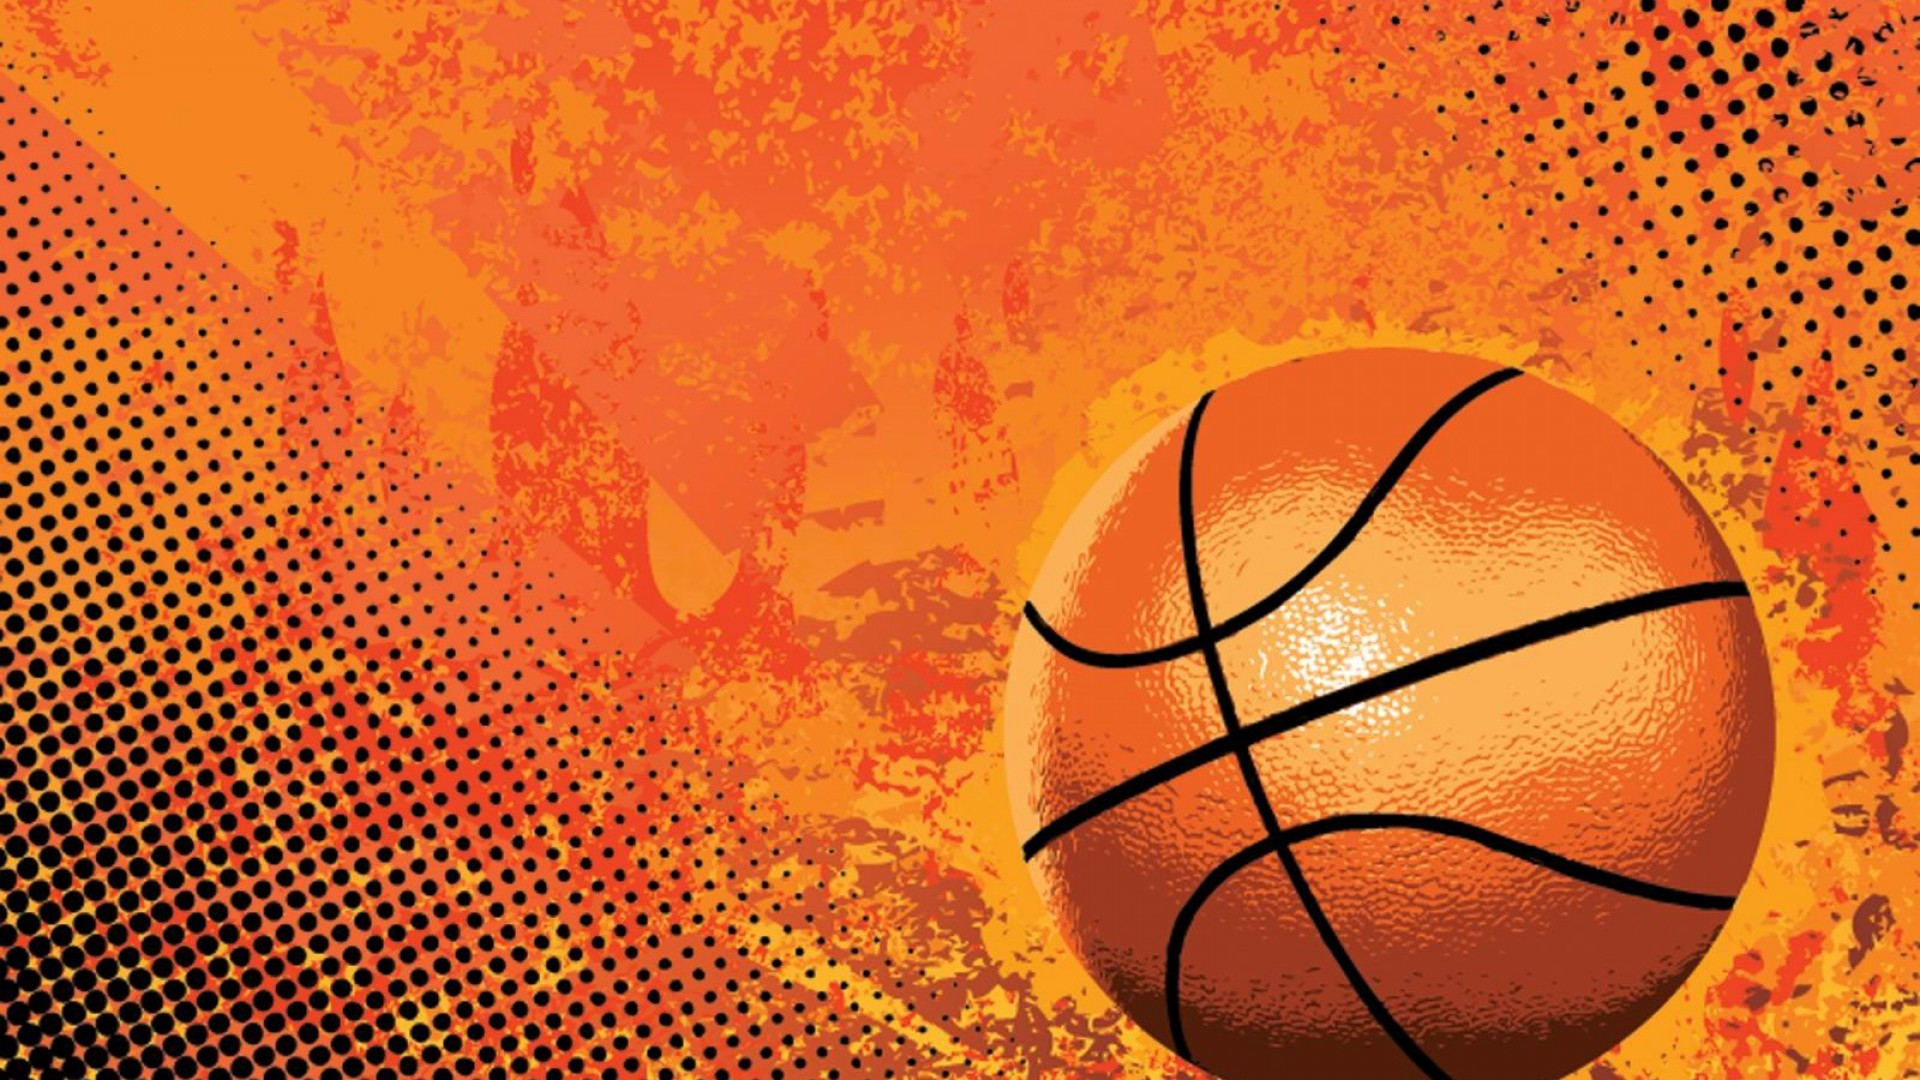 Sports Background Images: Sports Background Images (43+ Pictures